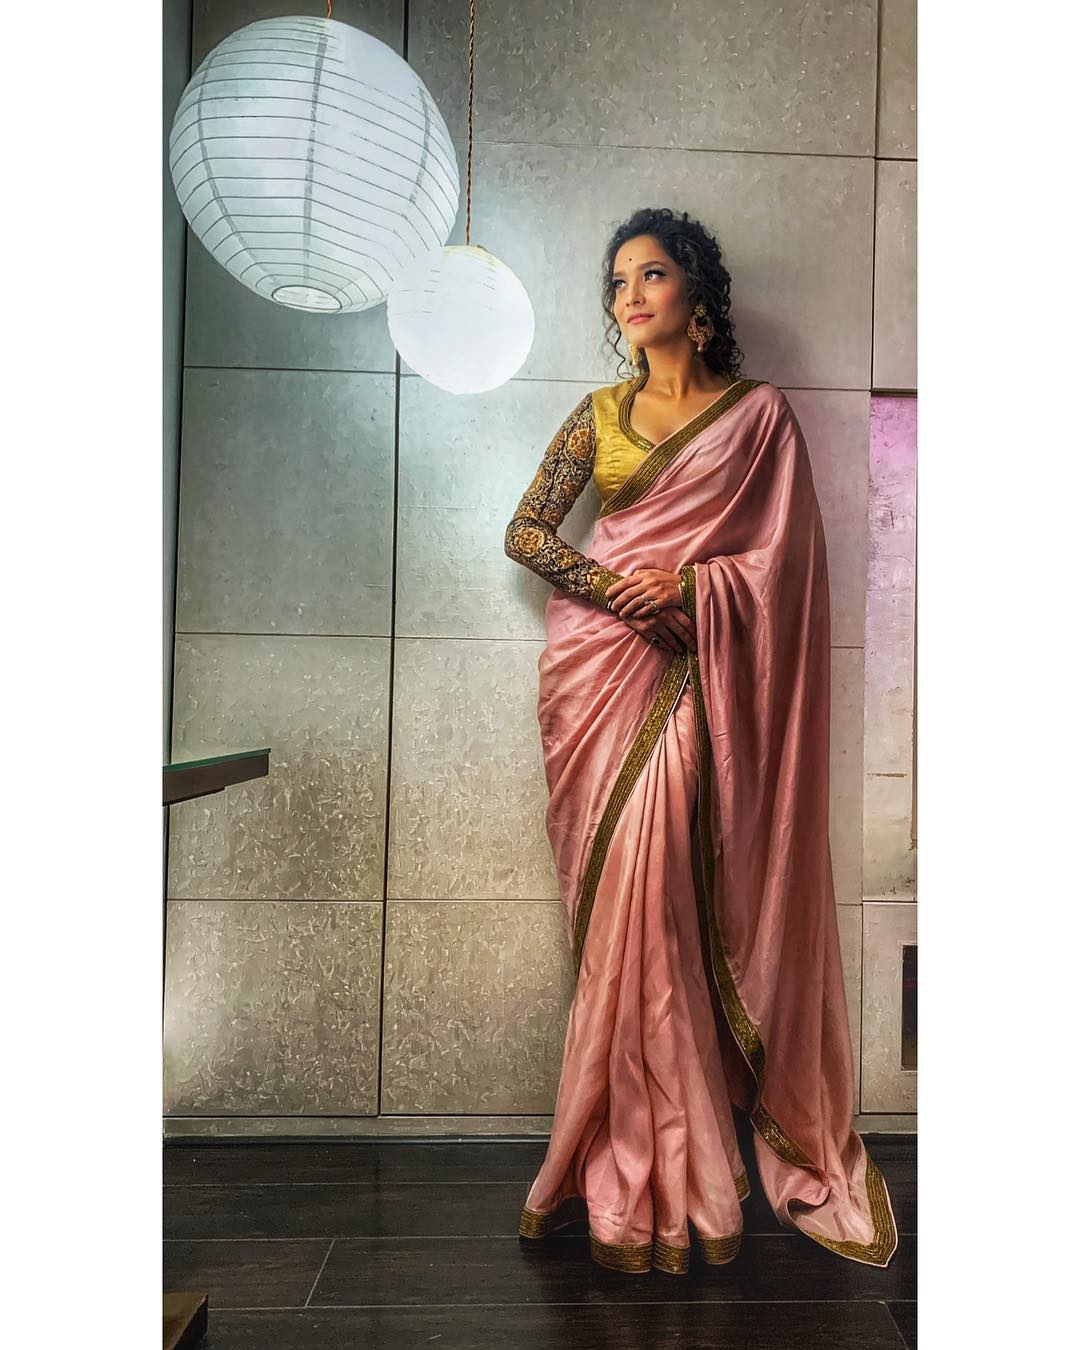 2 Ankita Lokhande Styled Her Curls Perfectly For The Most Gorgeous Sari Look